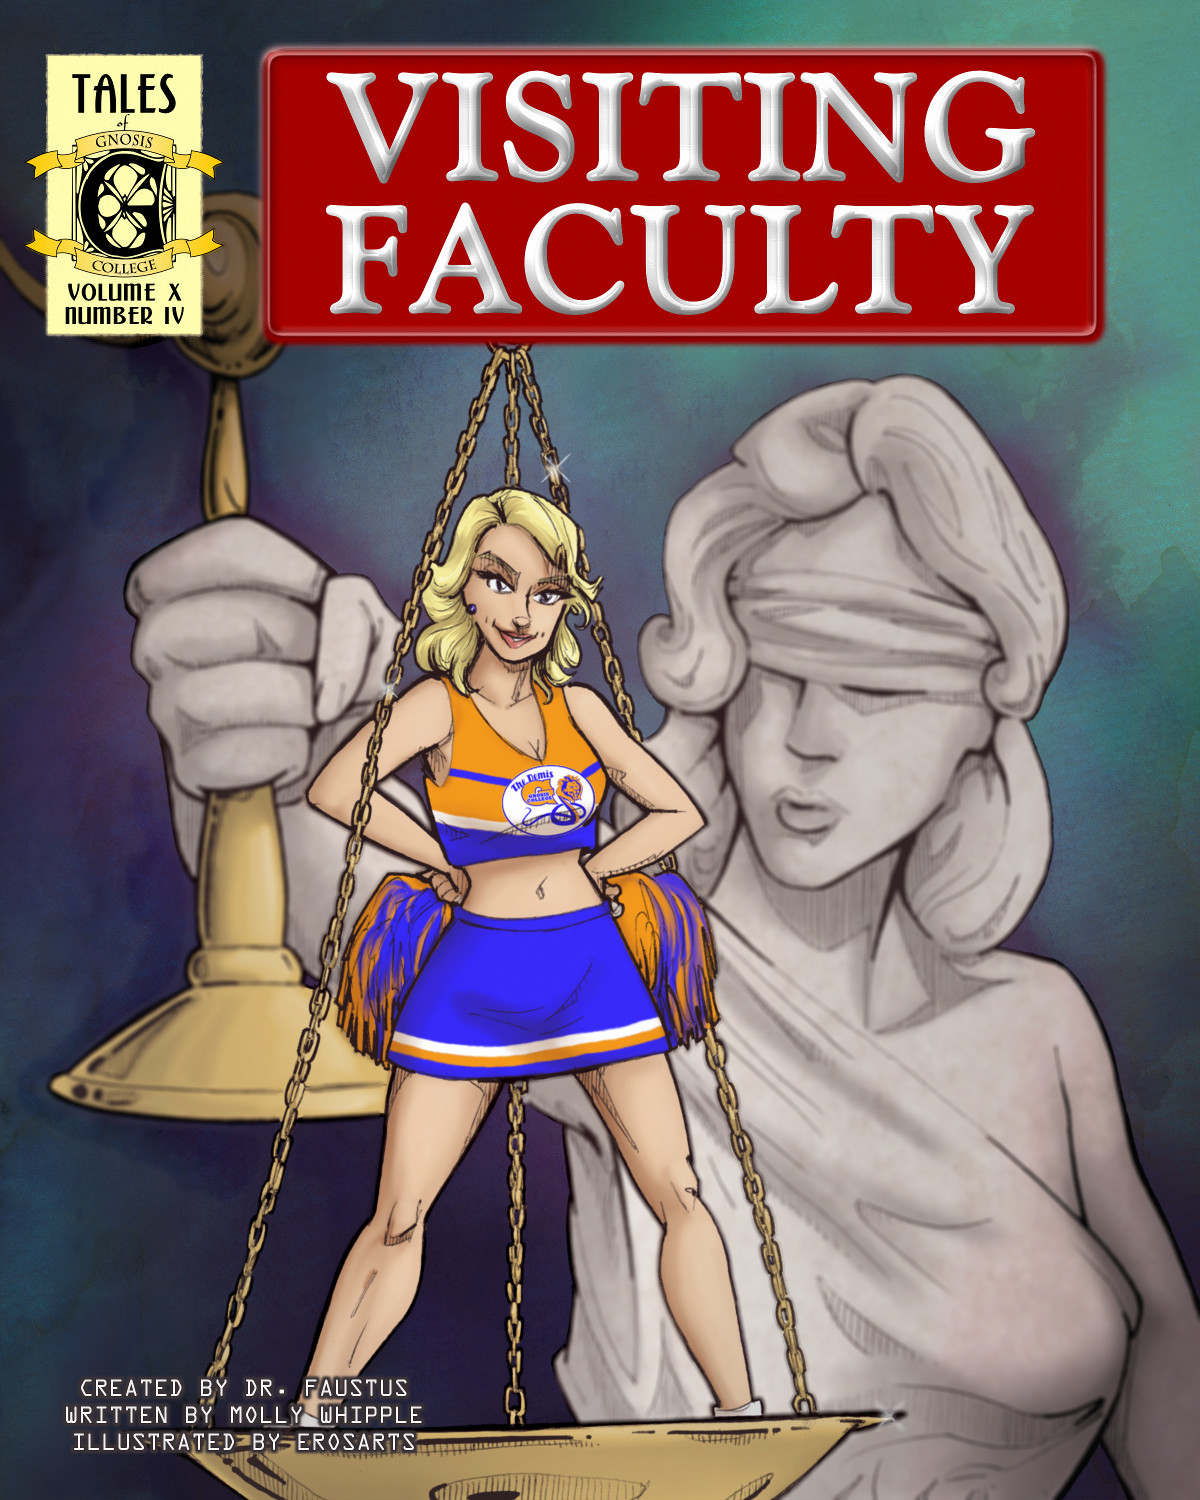 Time for cheerleader heroics at Gnosis College